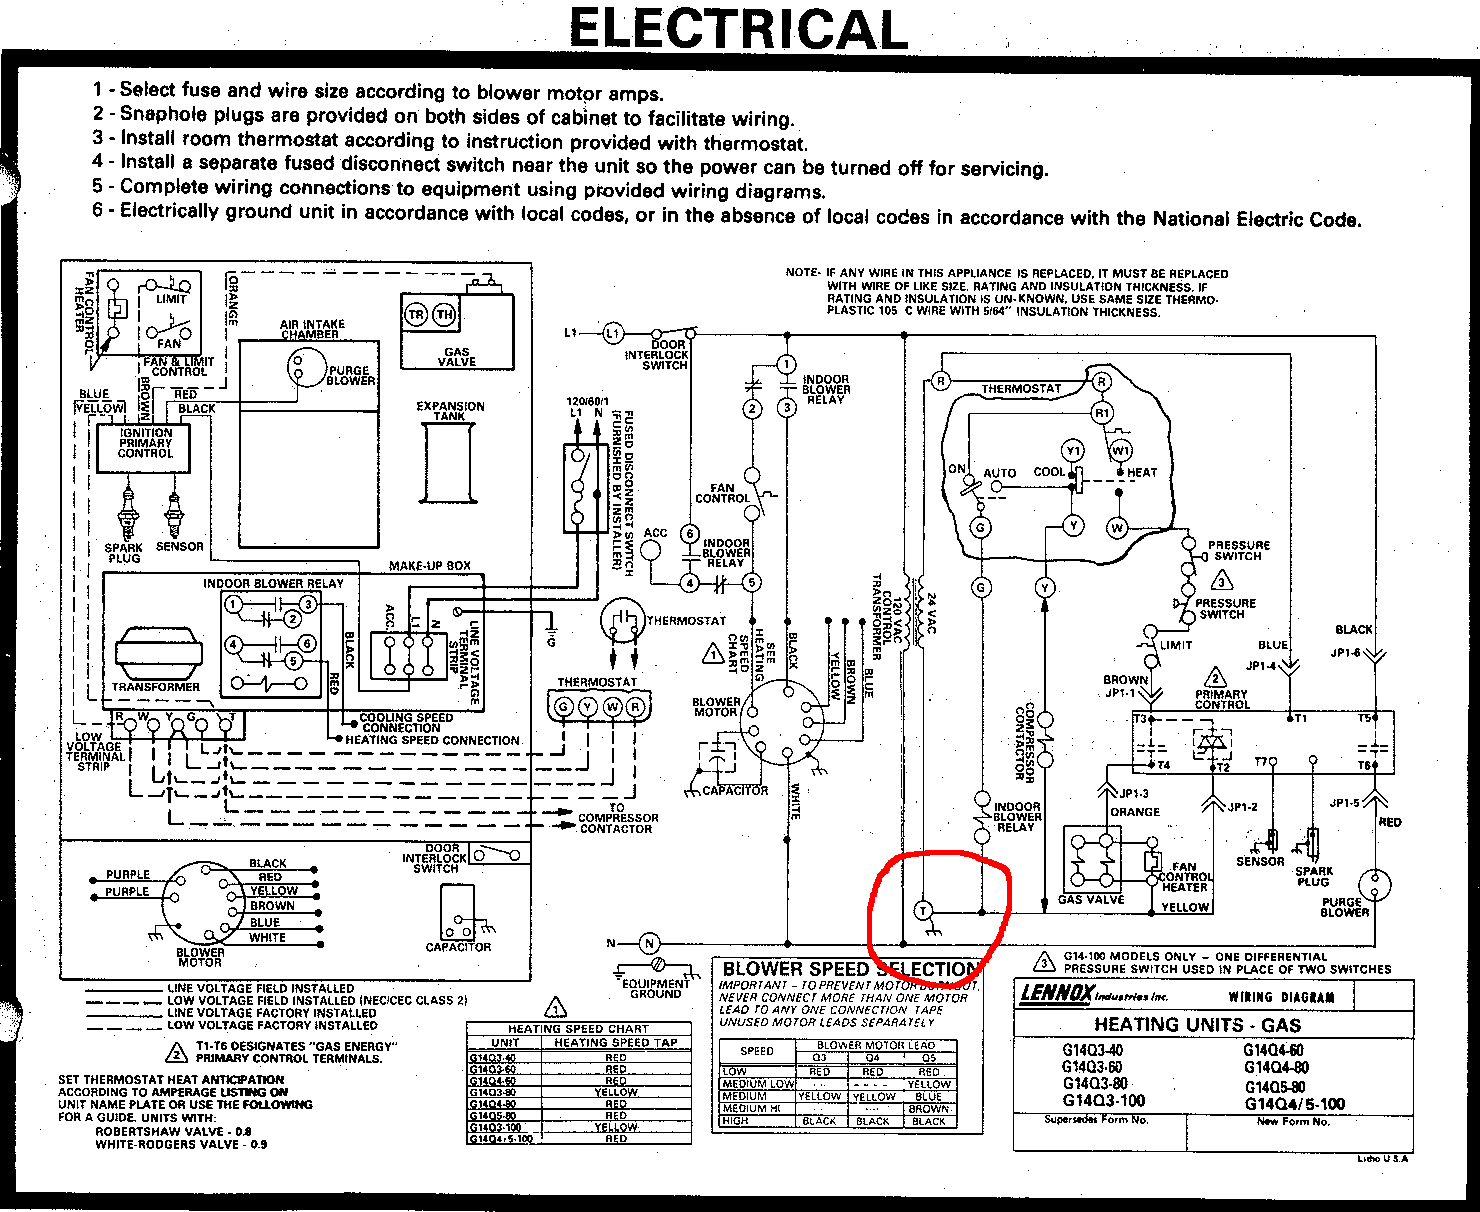 Oil Furnace Wiring Diagram For Nest | Wiring Diagram - Nest Wiring Diagram Ac Furnace